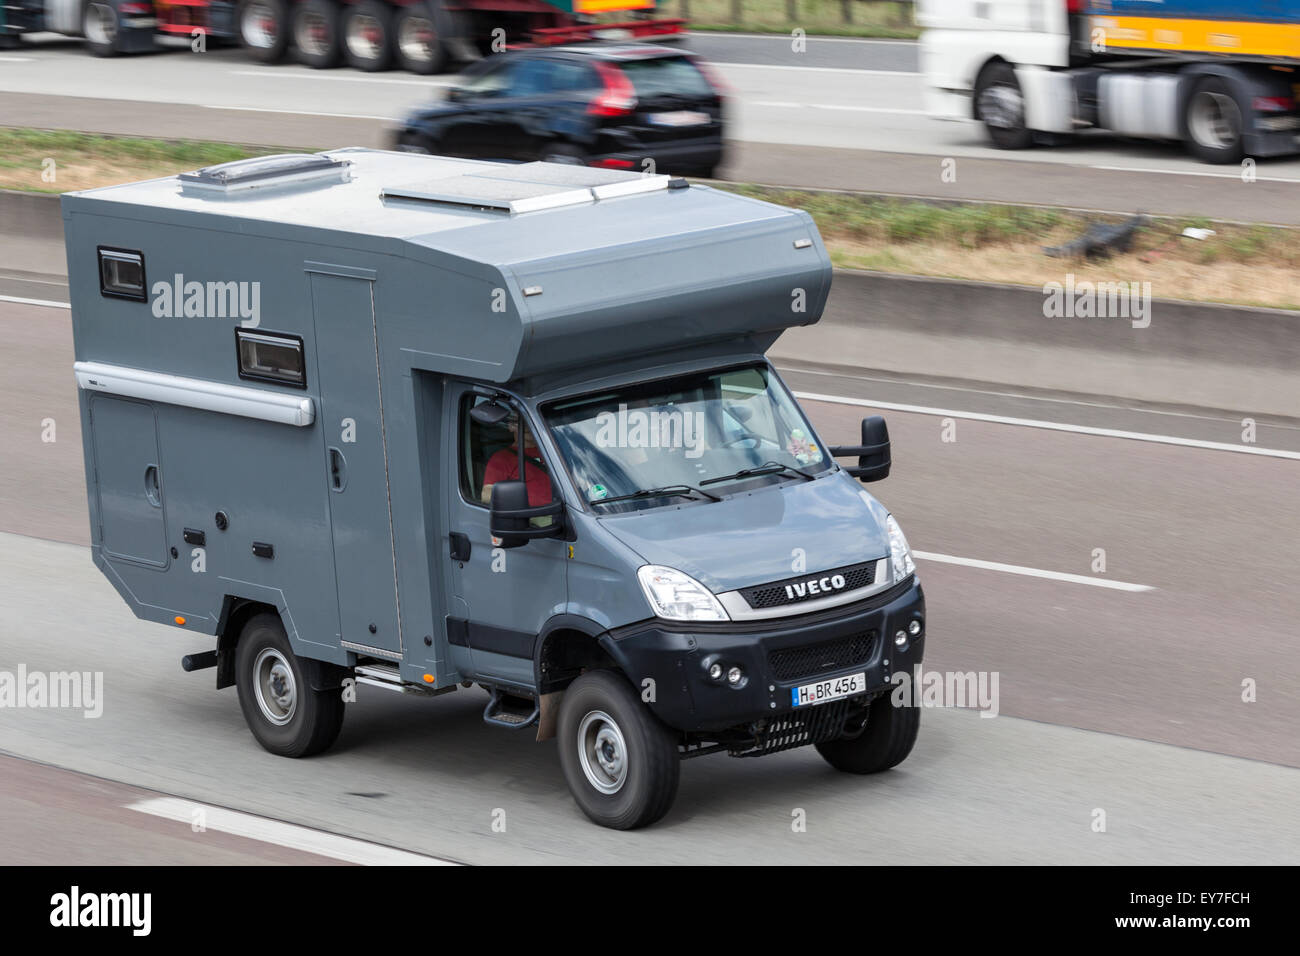 Iveco Offroad Camper Travelling At The A5 Highway In Germany Stock Photo Alamy